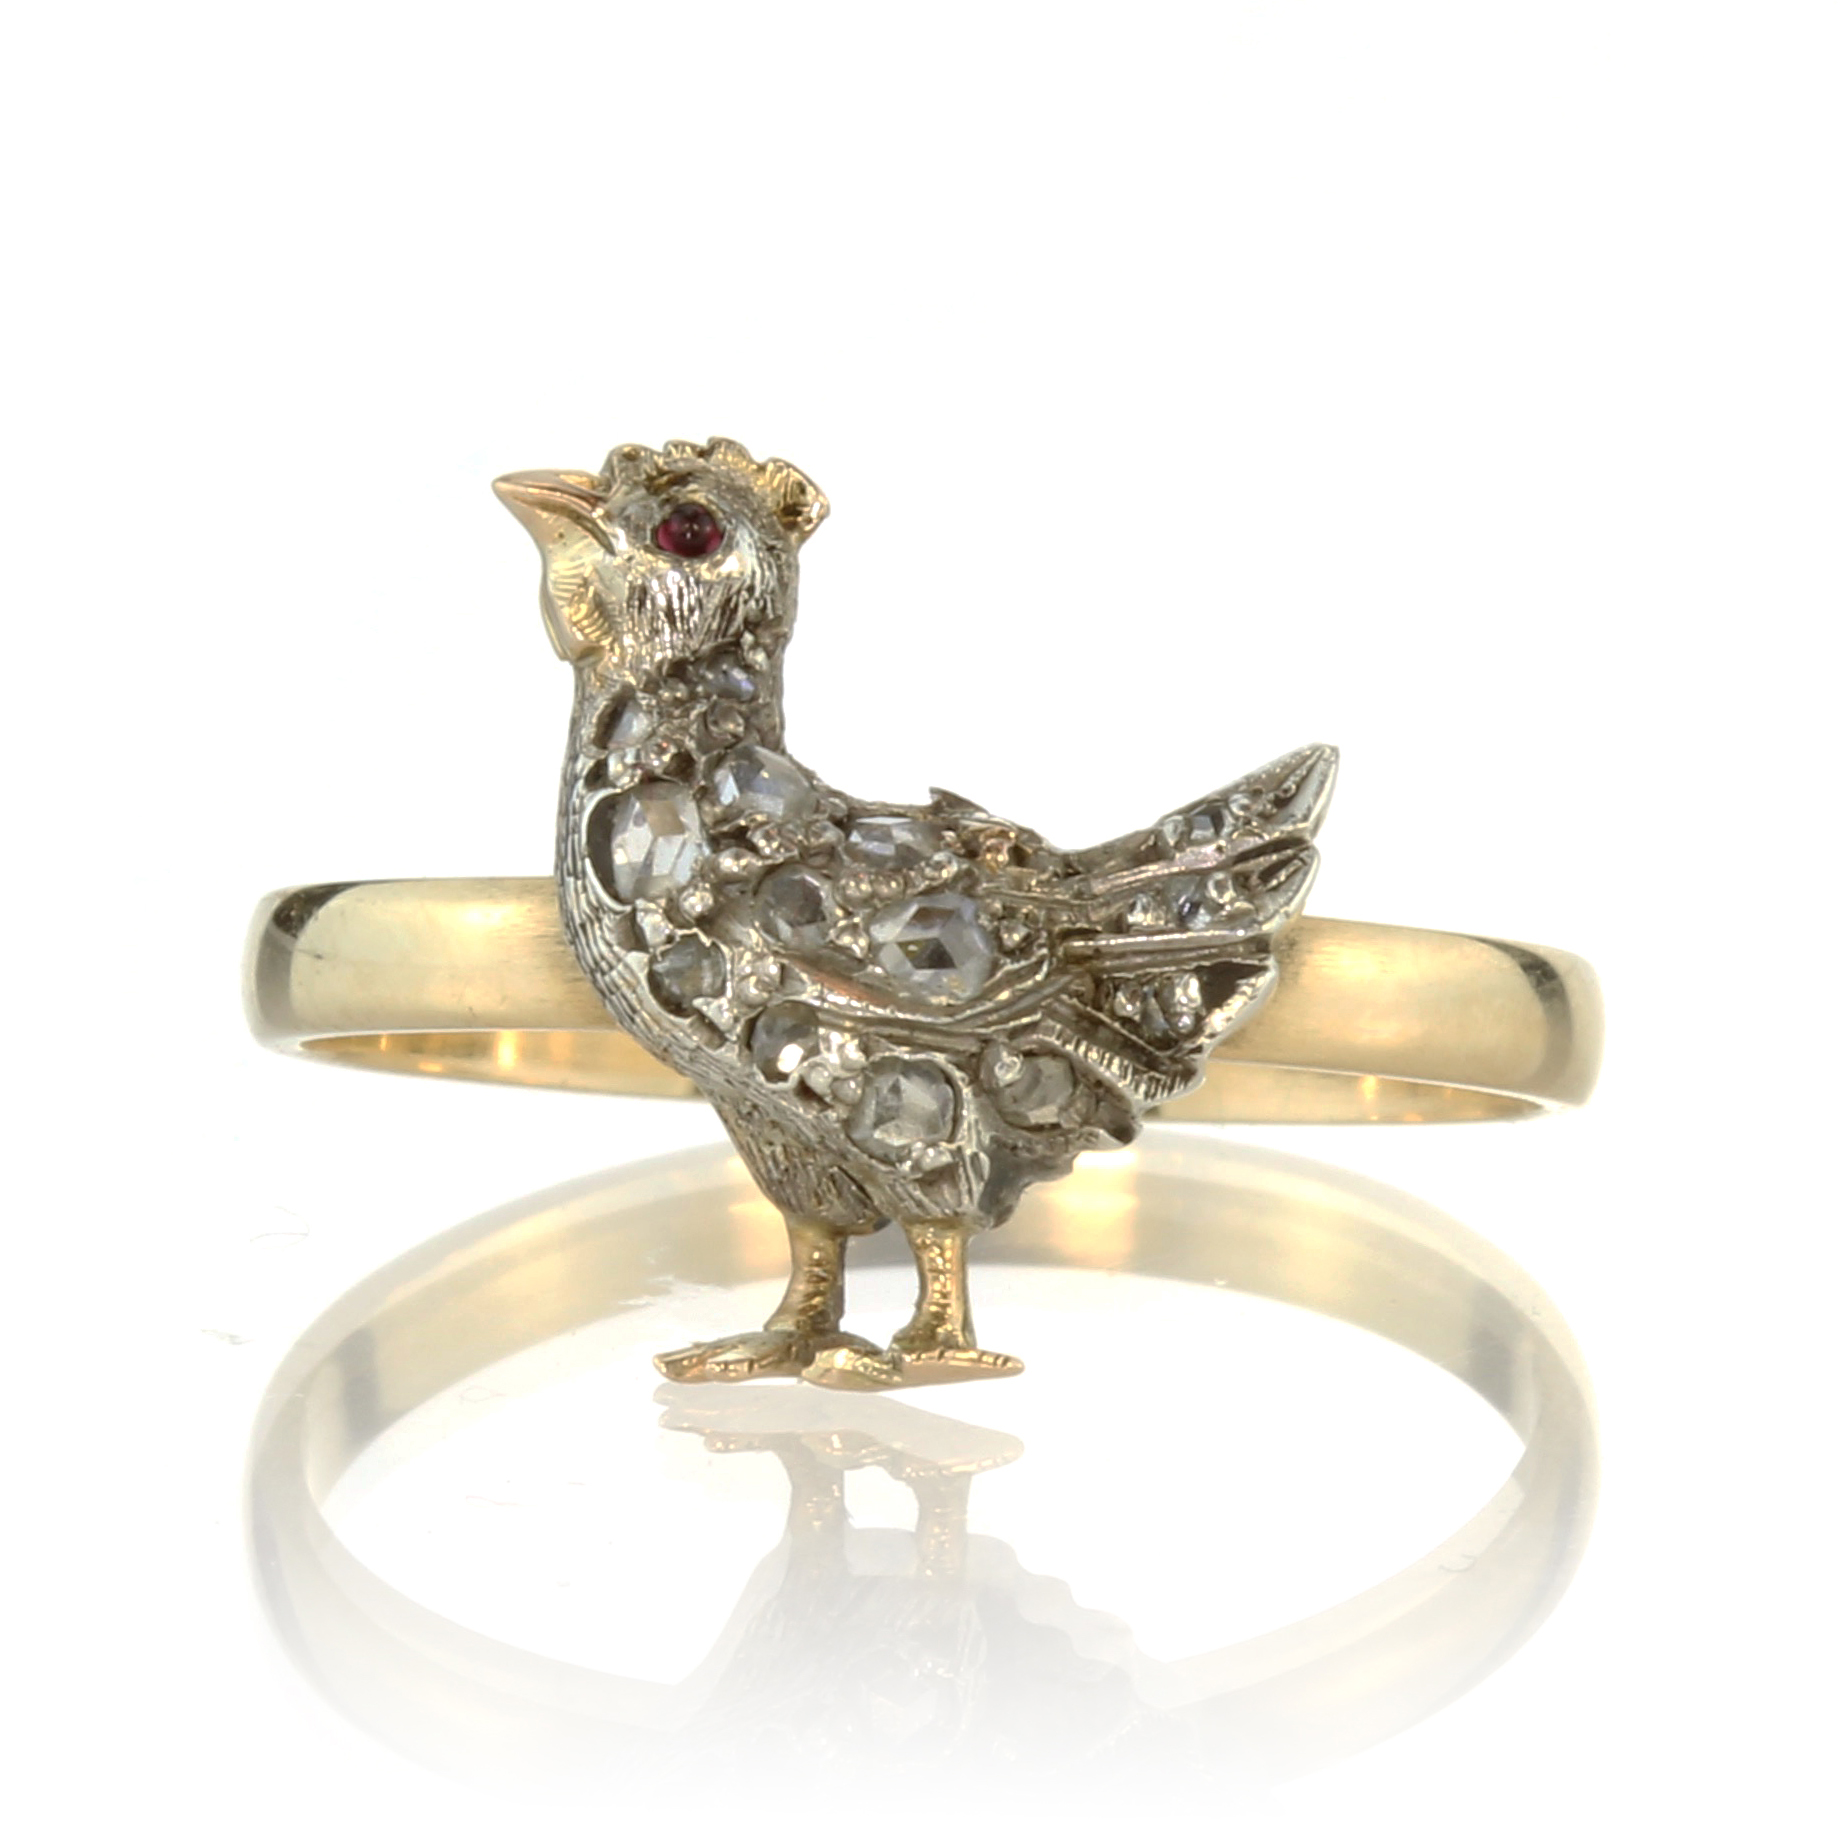 Los 30 - A jewelled ruby and diamond chicken / hen ring in 18ct yellow gold the hen depicted standing with